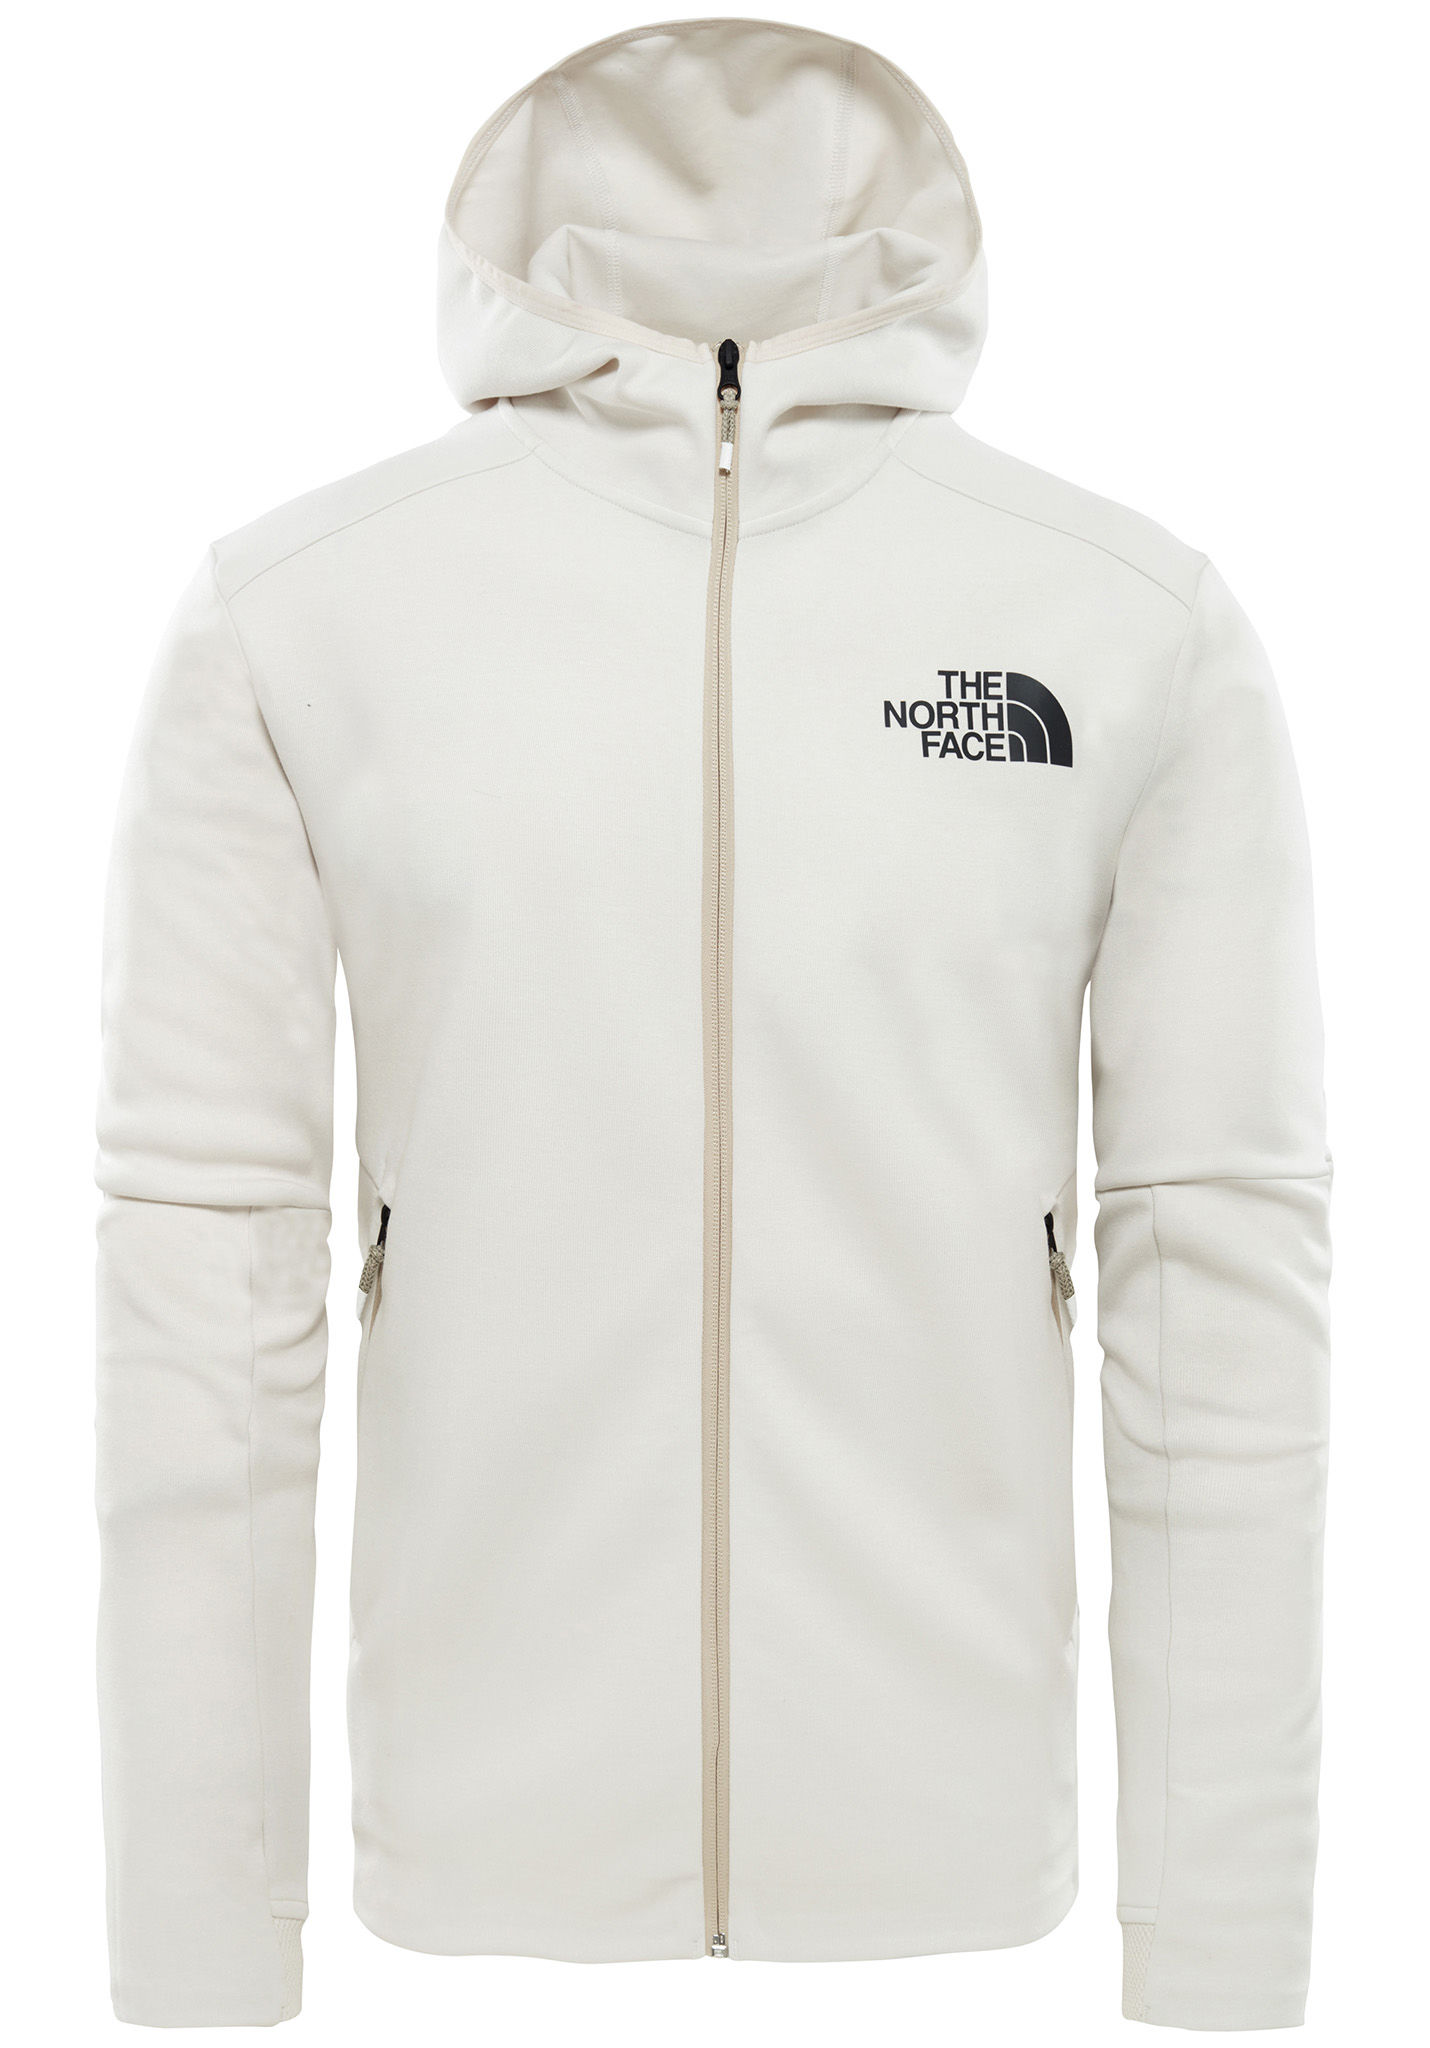 bddd3f531 THE NORTH FACE Vistak Fz Hood - Hooded Jacket for Men - White